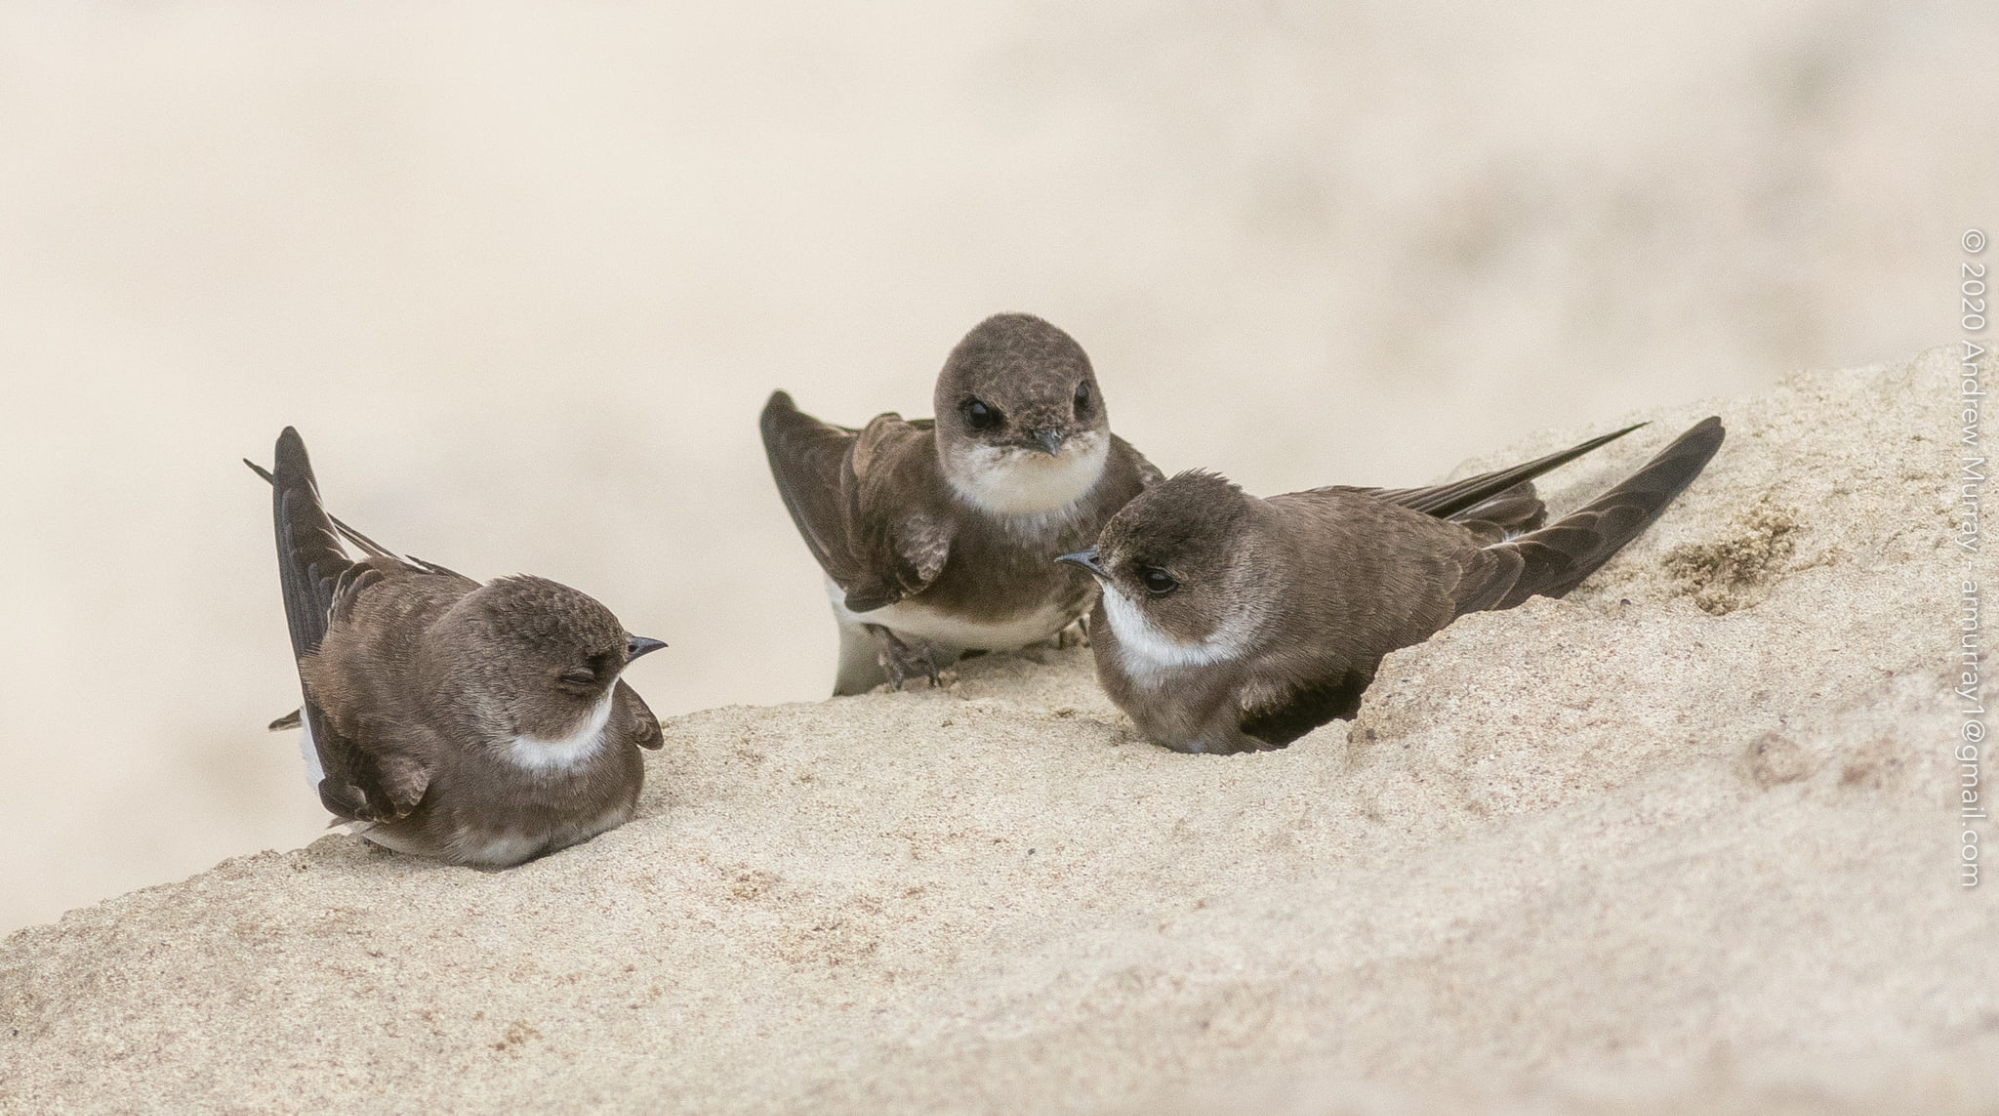 Three young bank swallows resting near their nest burrow.